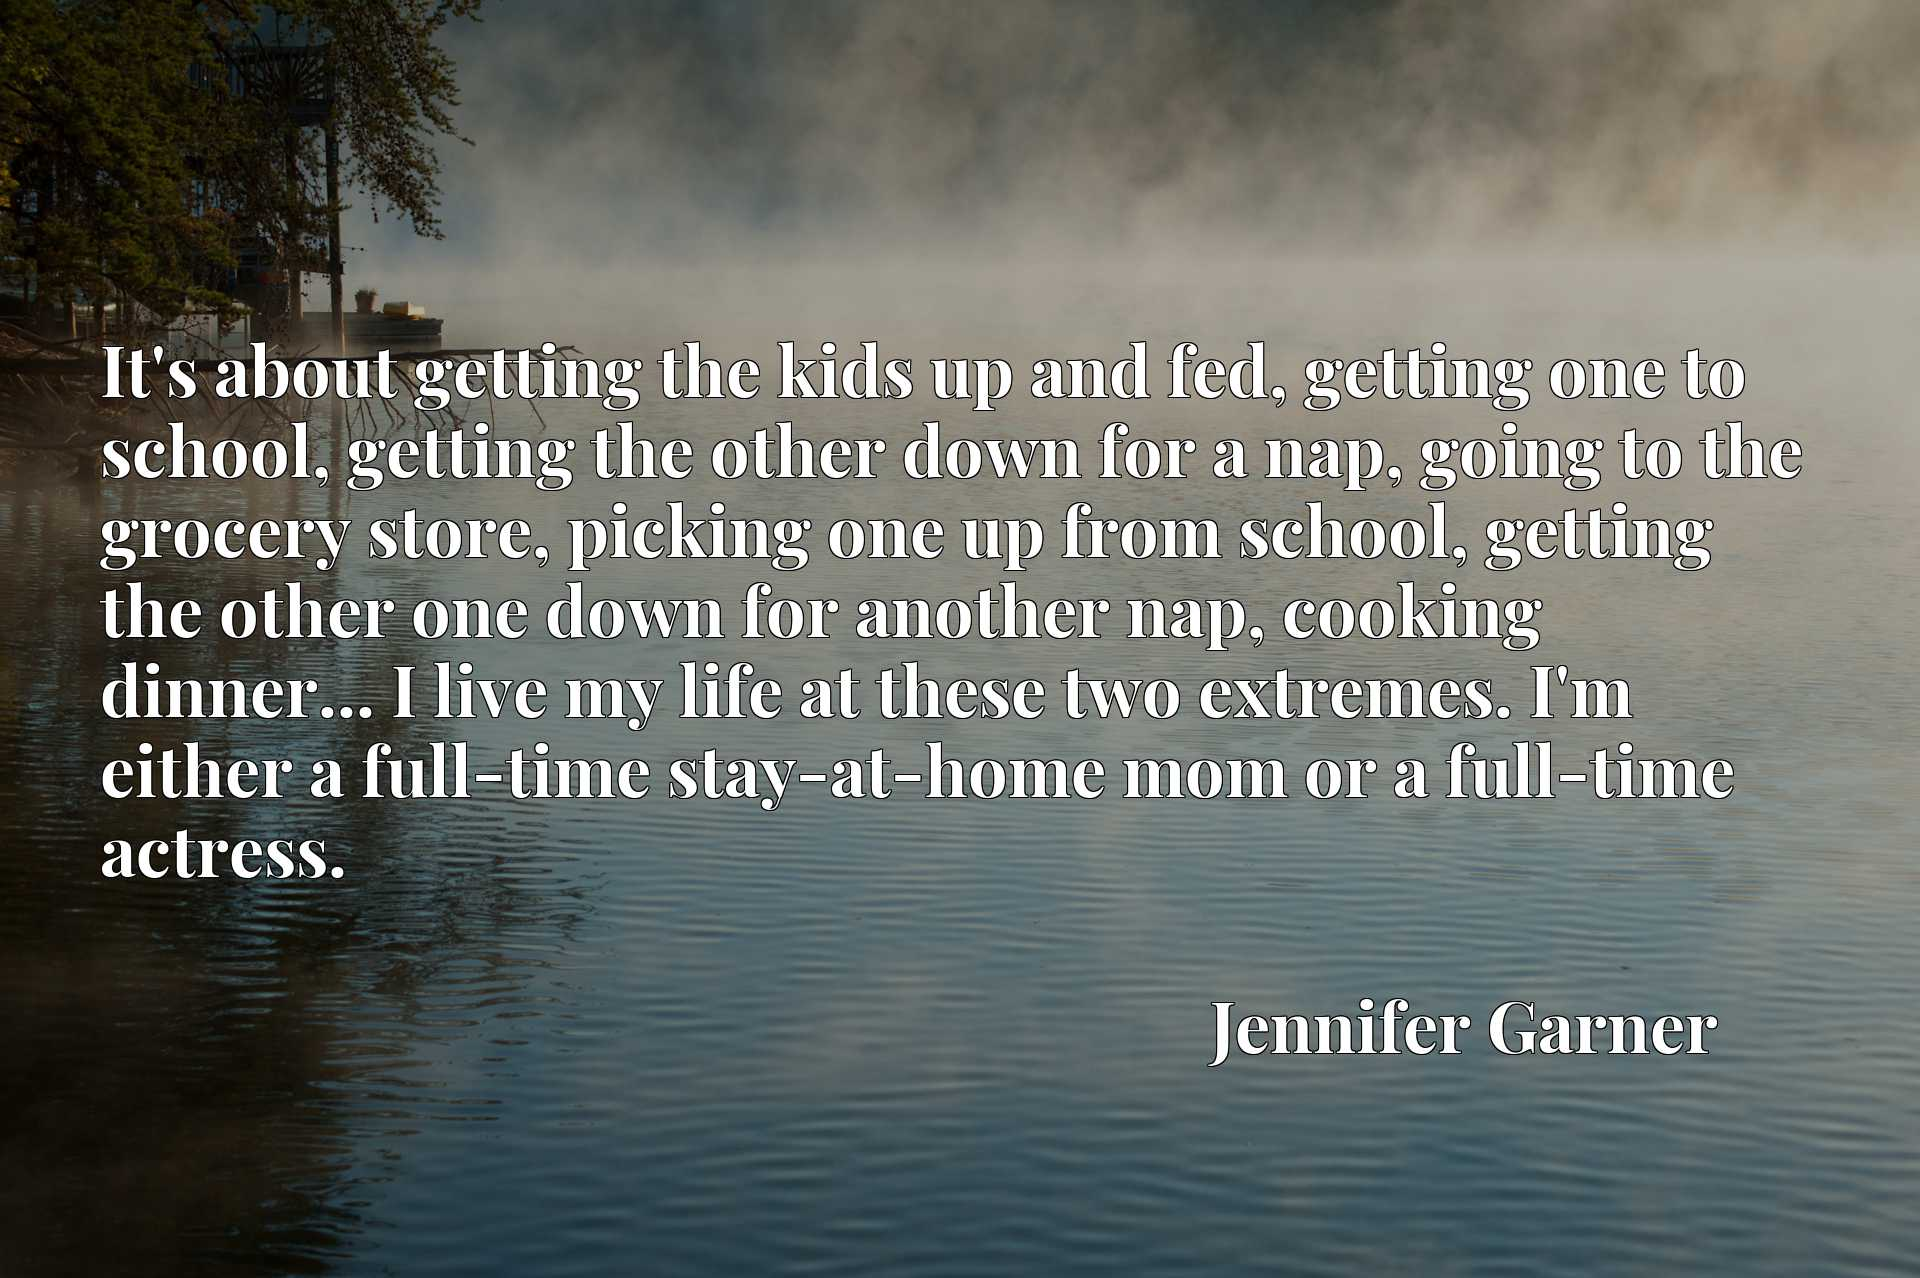 It's about getting the kids up and fed, getting one to school, getting the other down for a nap, going to the grocery store, picking one up from school, getting the other one down for another nap, cooking dinner... I live my life at these two extremes. I'm either a full-time stay-at-home mom or a full-time actress.